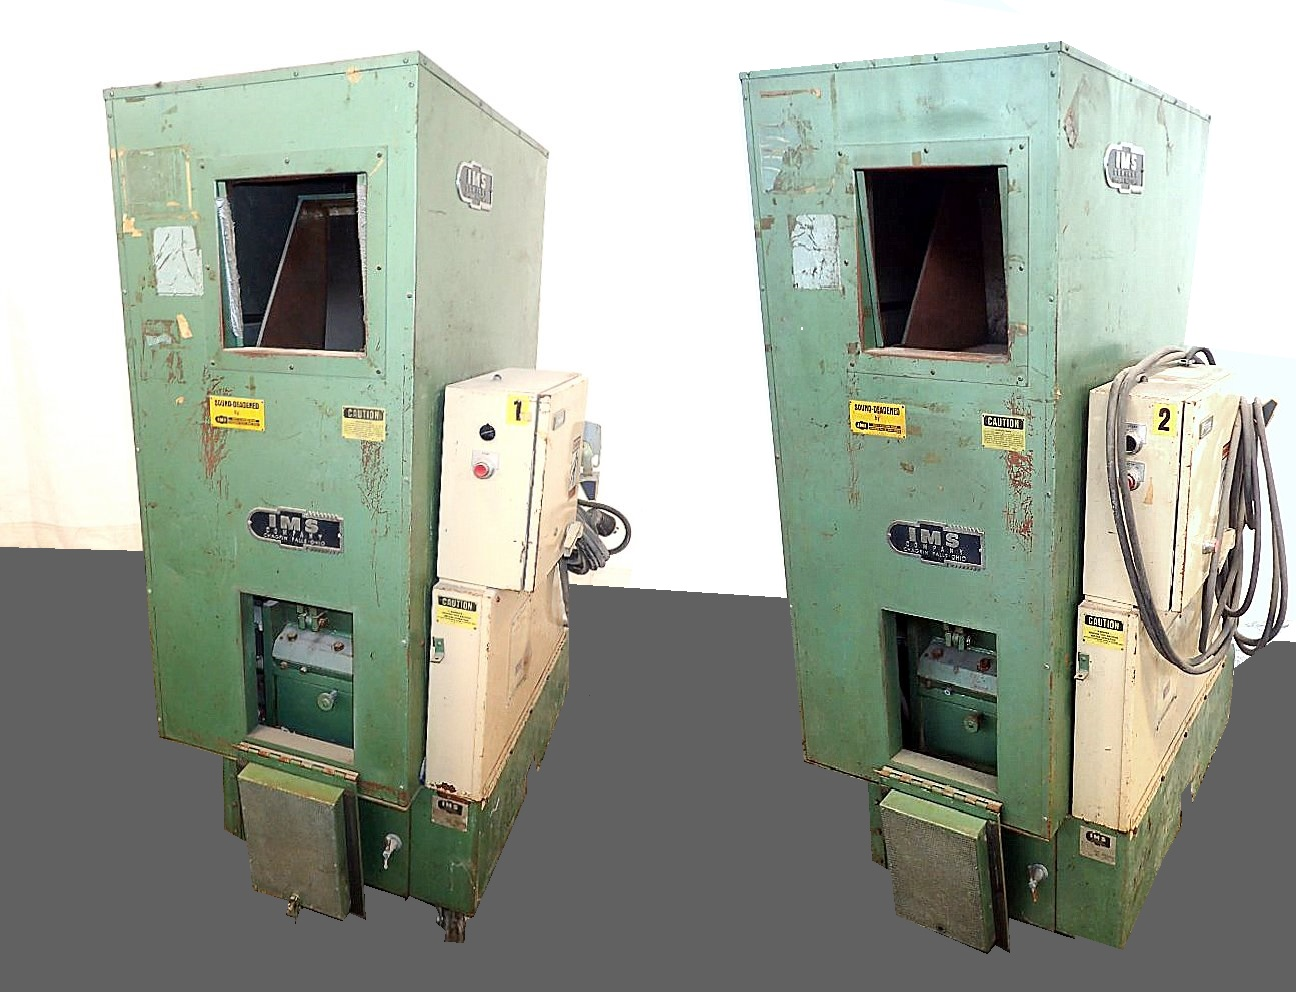 2 ALIKE INSULATED IMS GRANULATORS A1